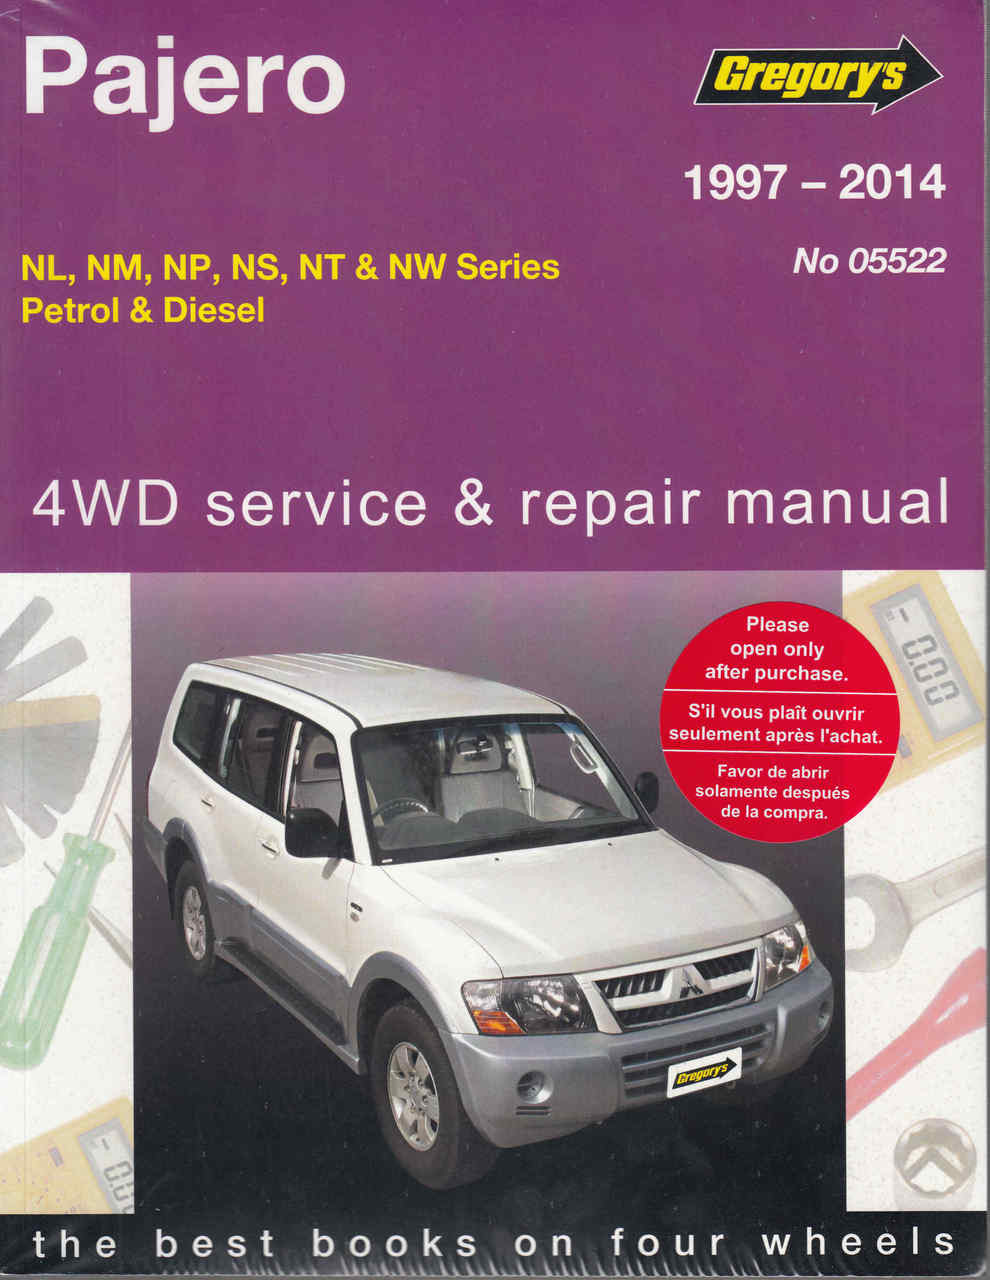 medium resolution of mitsubishi pajero nl nm np ns nt nw series petrol